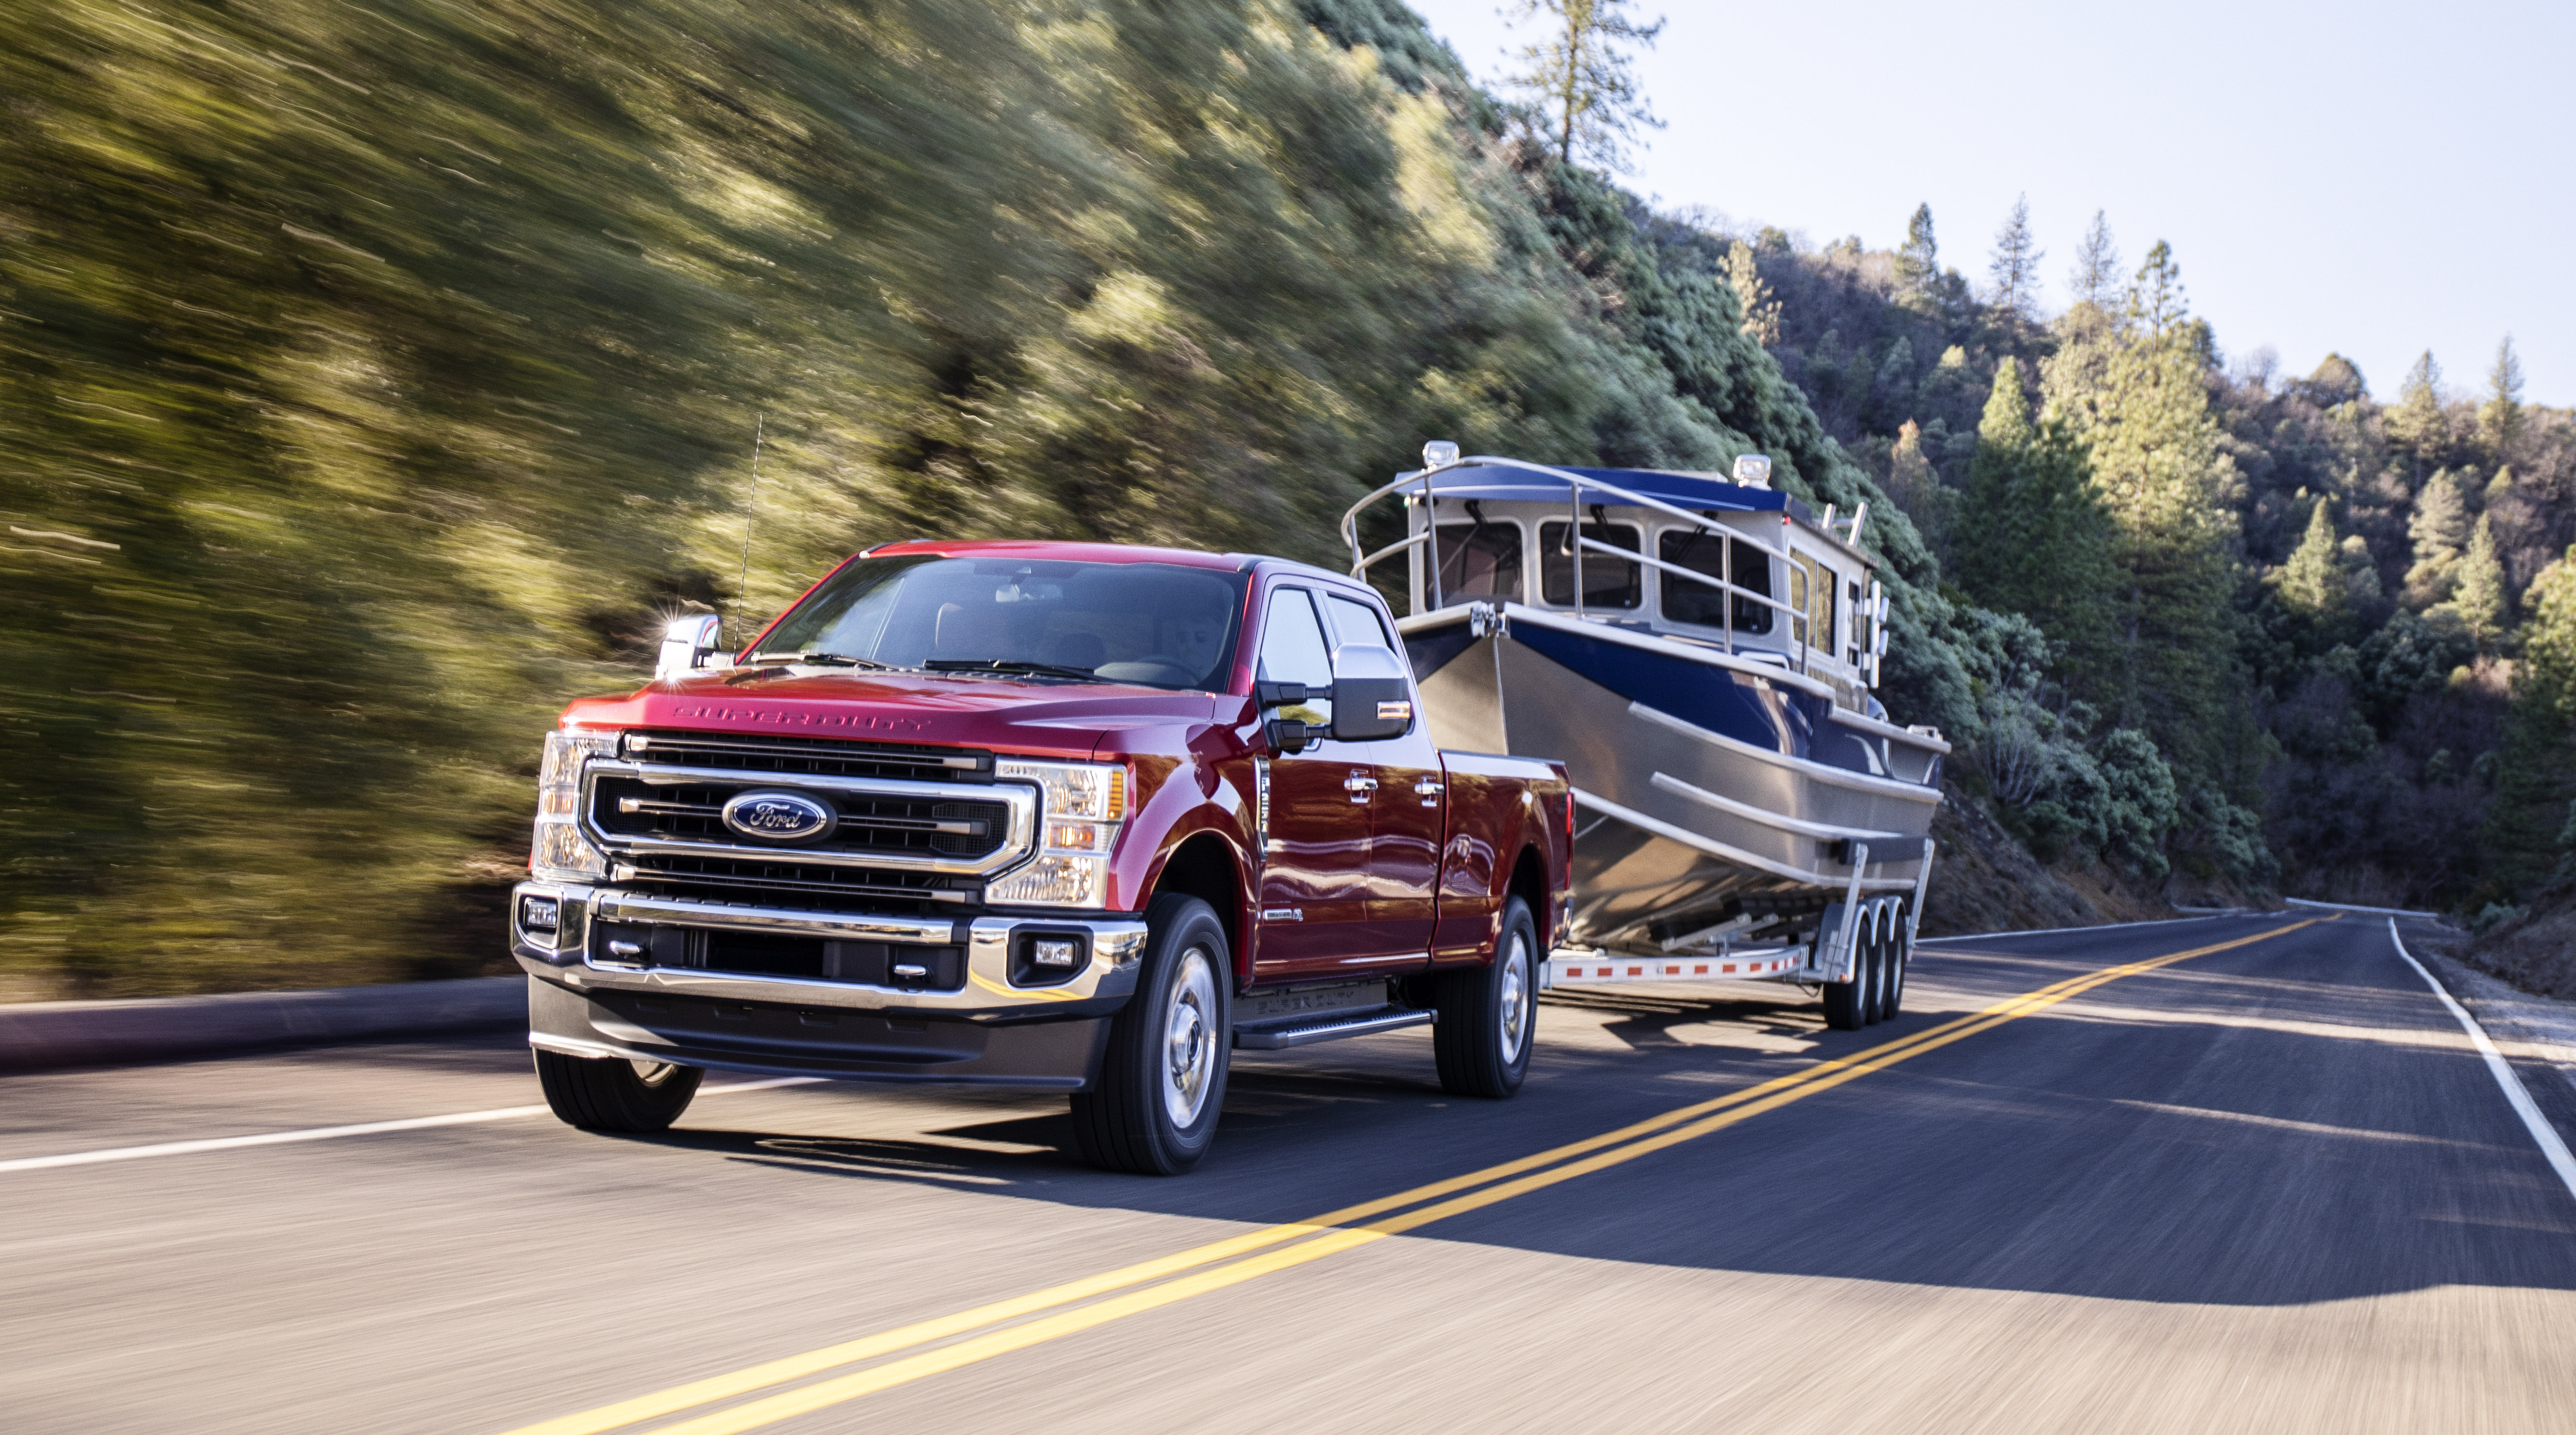 227224d765 2020 F-Series Super Duty Promises to Offer Highest Towing and Payload  Ratings